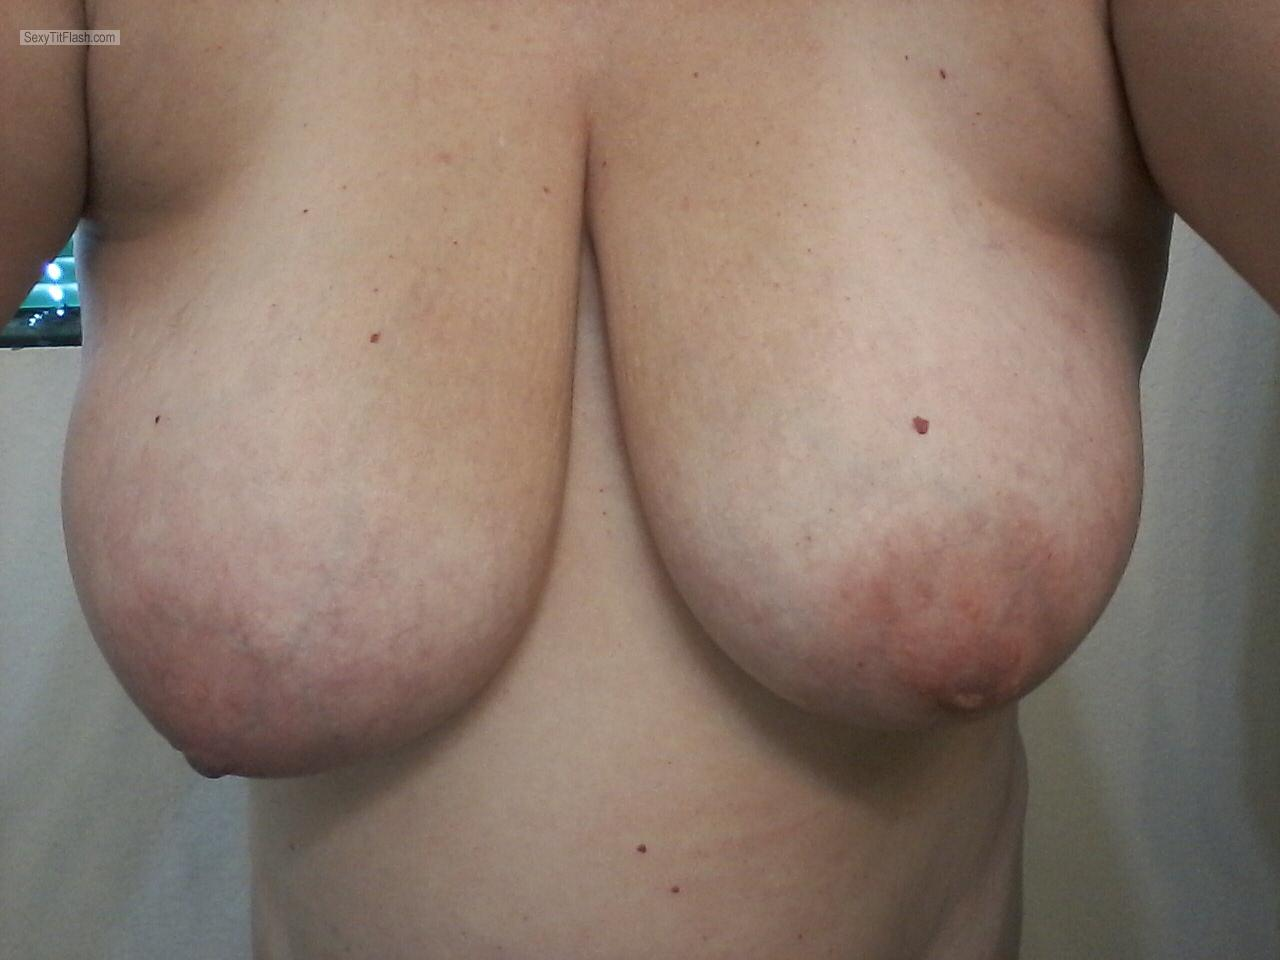 Tit Flash: My Big Tits (Selfie) - Shysexydd from United States